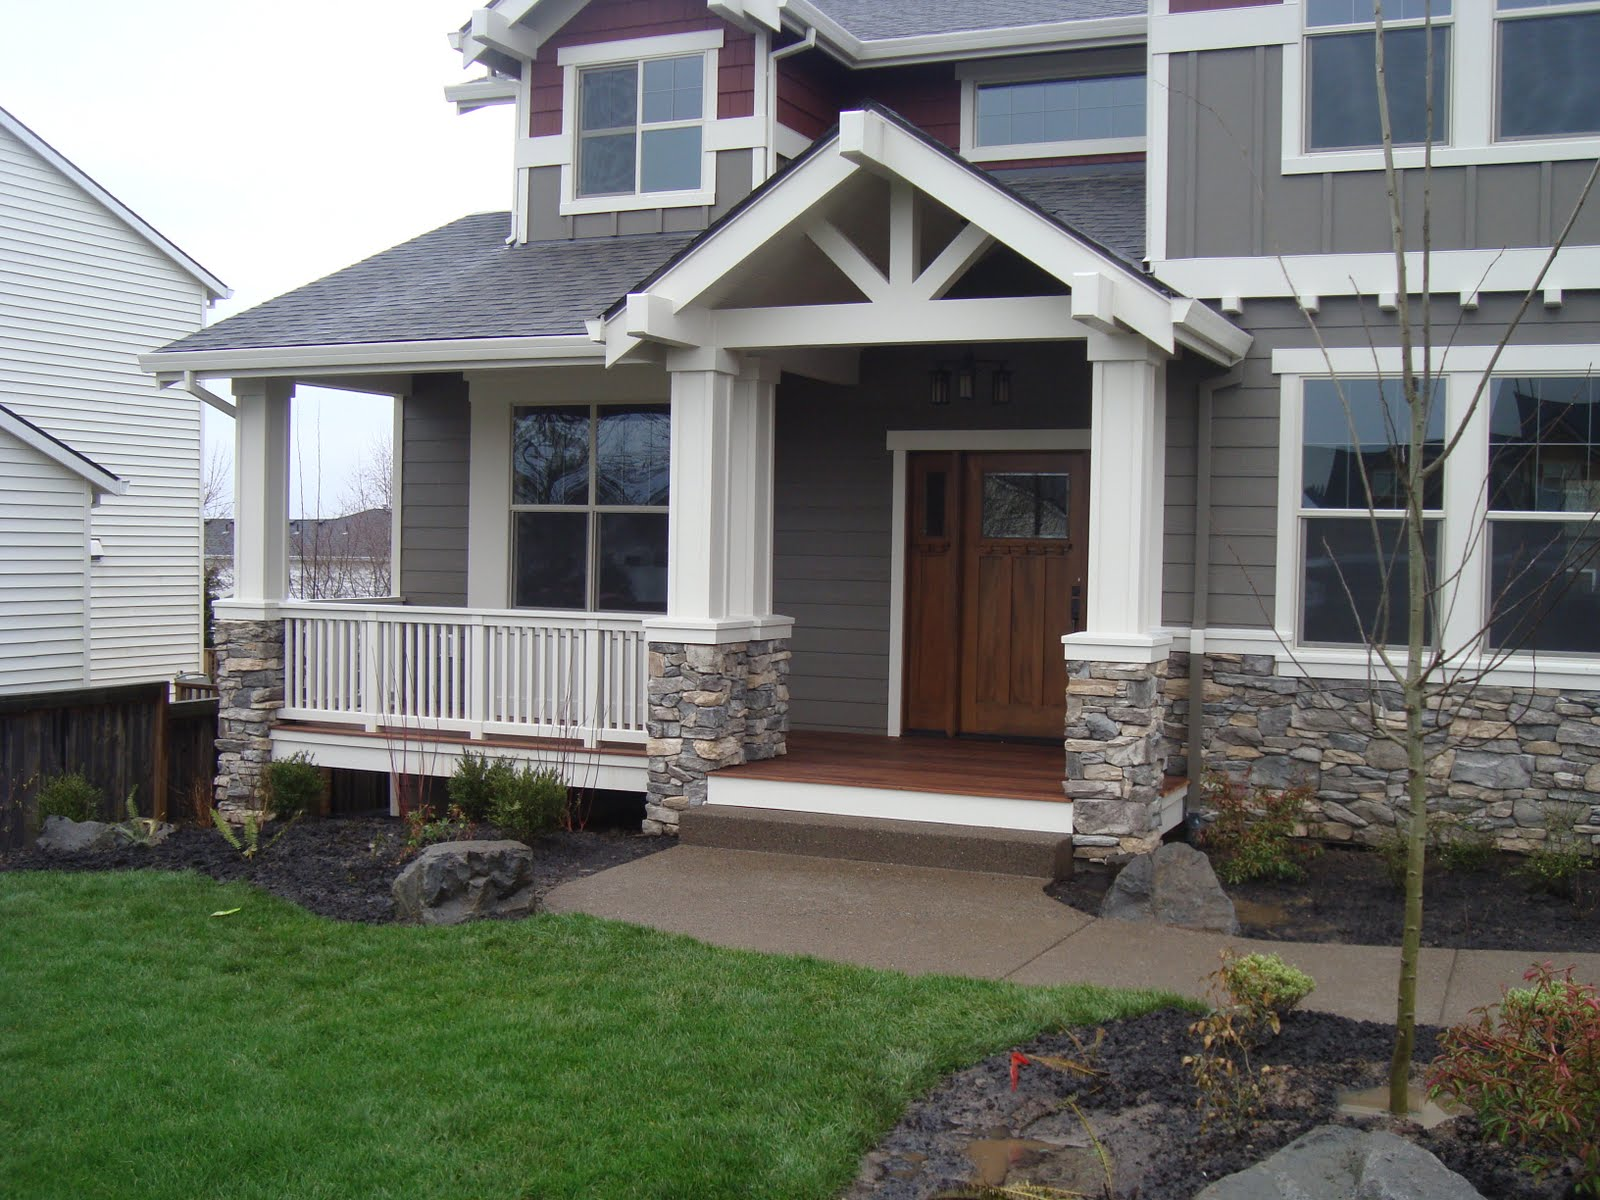 Awesome Halgren Construction Exterior Stone Veneer And Deck